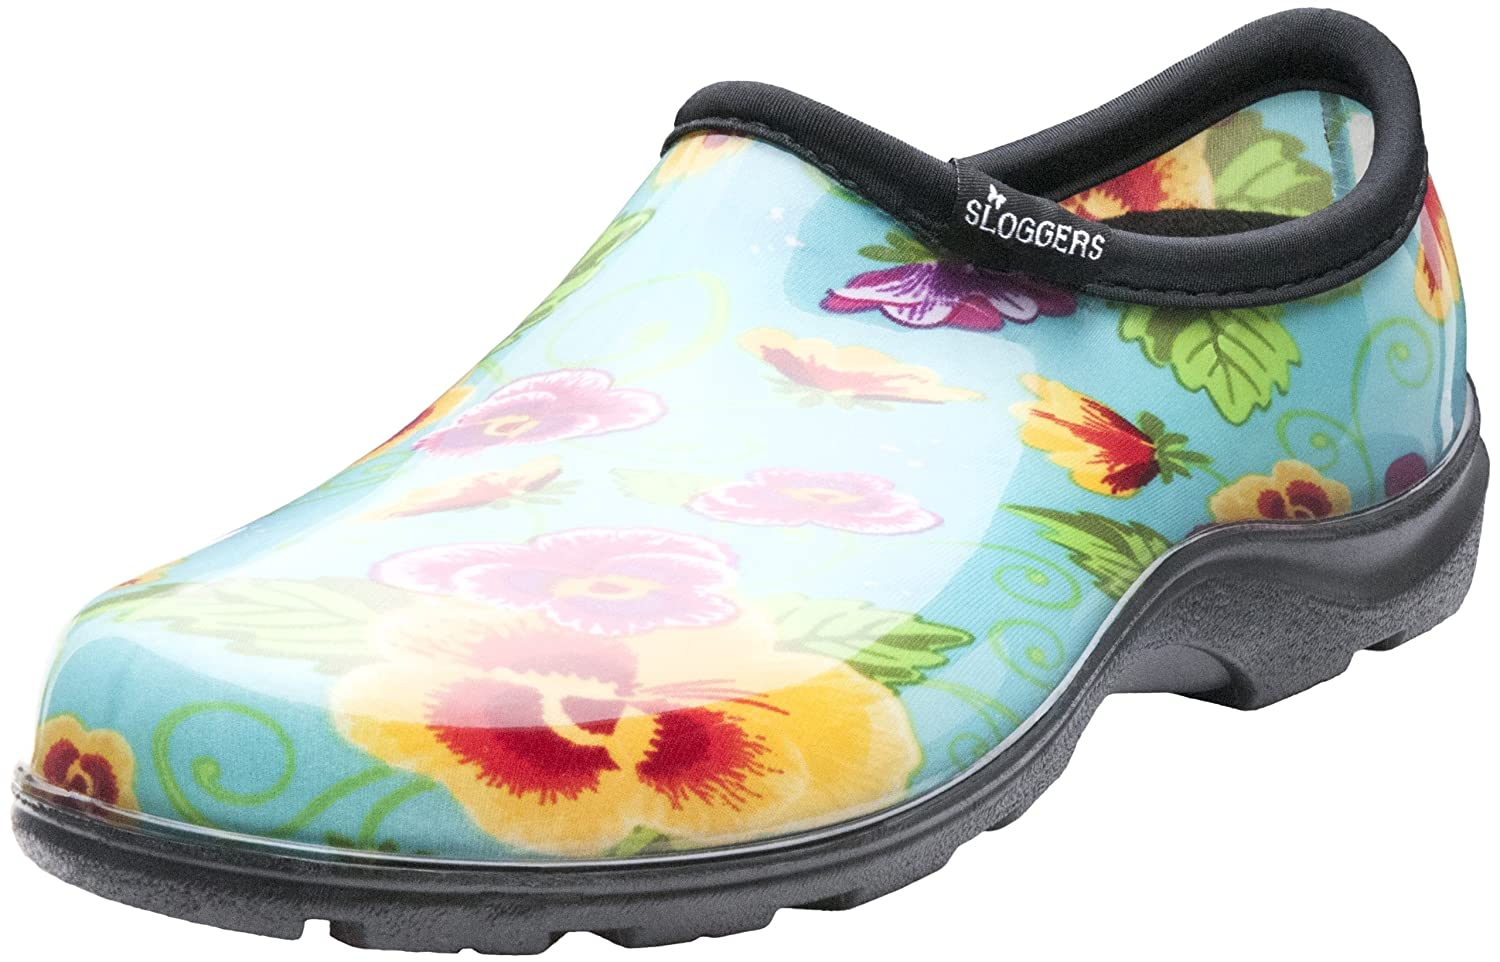 Sloggers Women's WaterproofRain and Garden Shoe with Comfort Insole, Pansy Turquoise, Size 10, Style 5114TP10